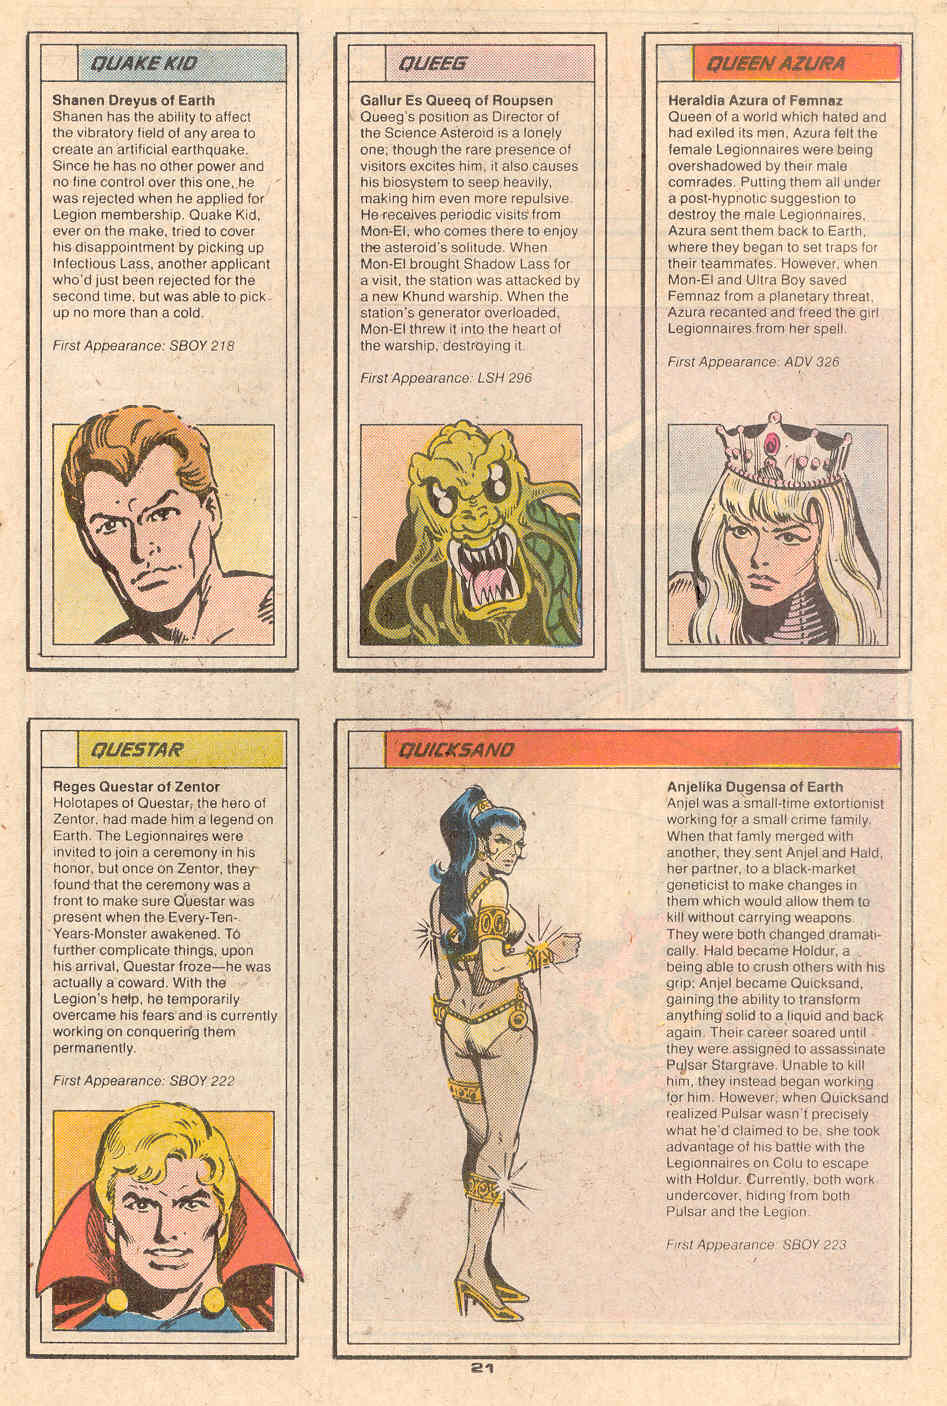 Quake Kid, Qeeg, Queen Azura, Questar, and Quicksand by Rick Stasi and Joe Rubinstein - Who's Who in the Legion of Super-Heroes #5